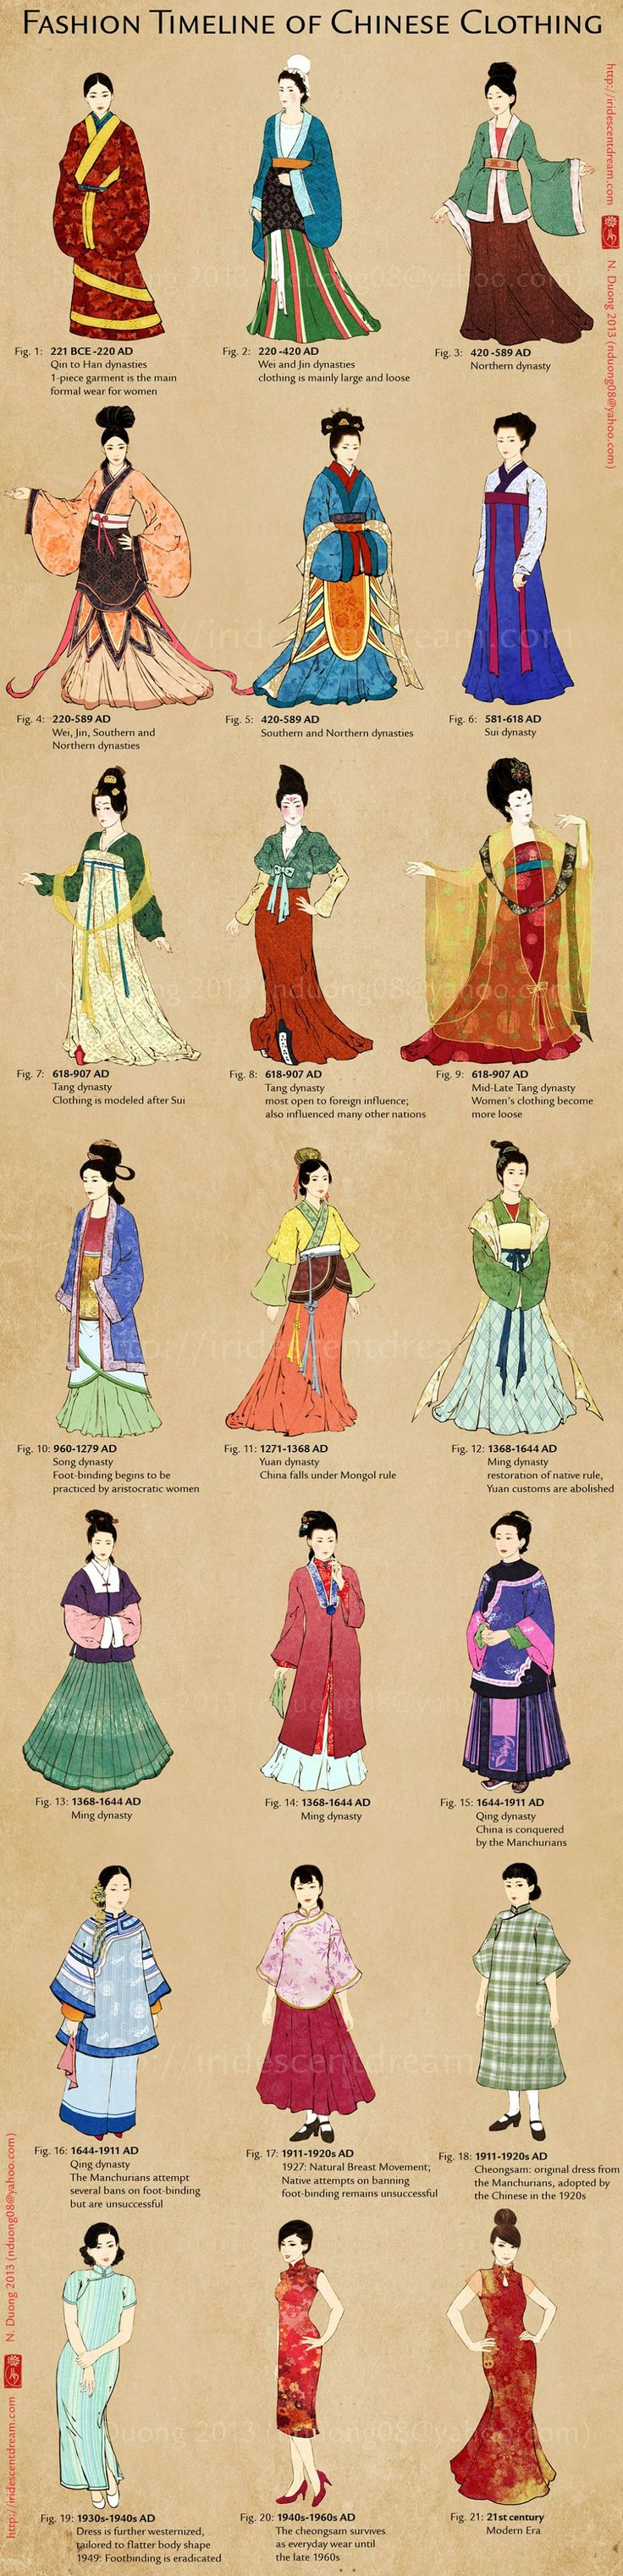 Good chart to go by for my SCA stuff.  Sadness that a Cheongsam might not be period though :/